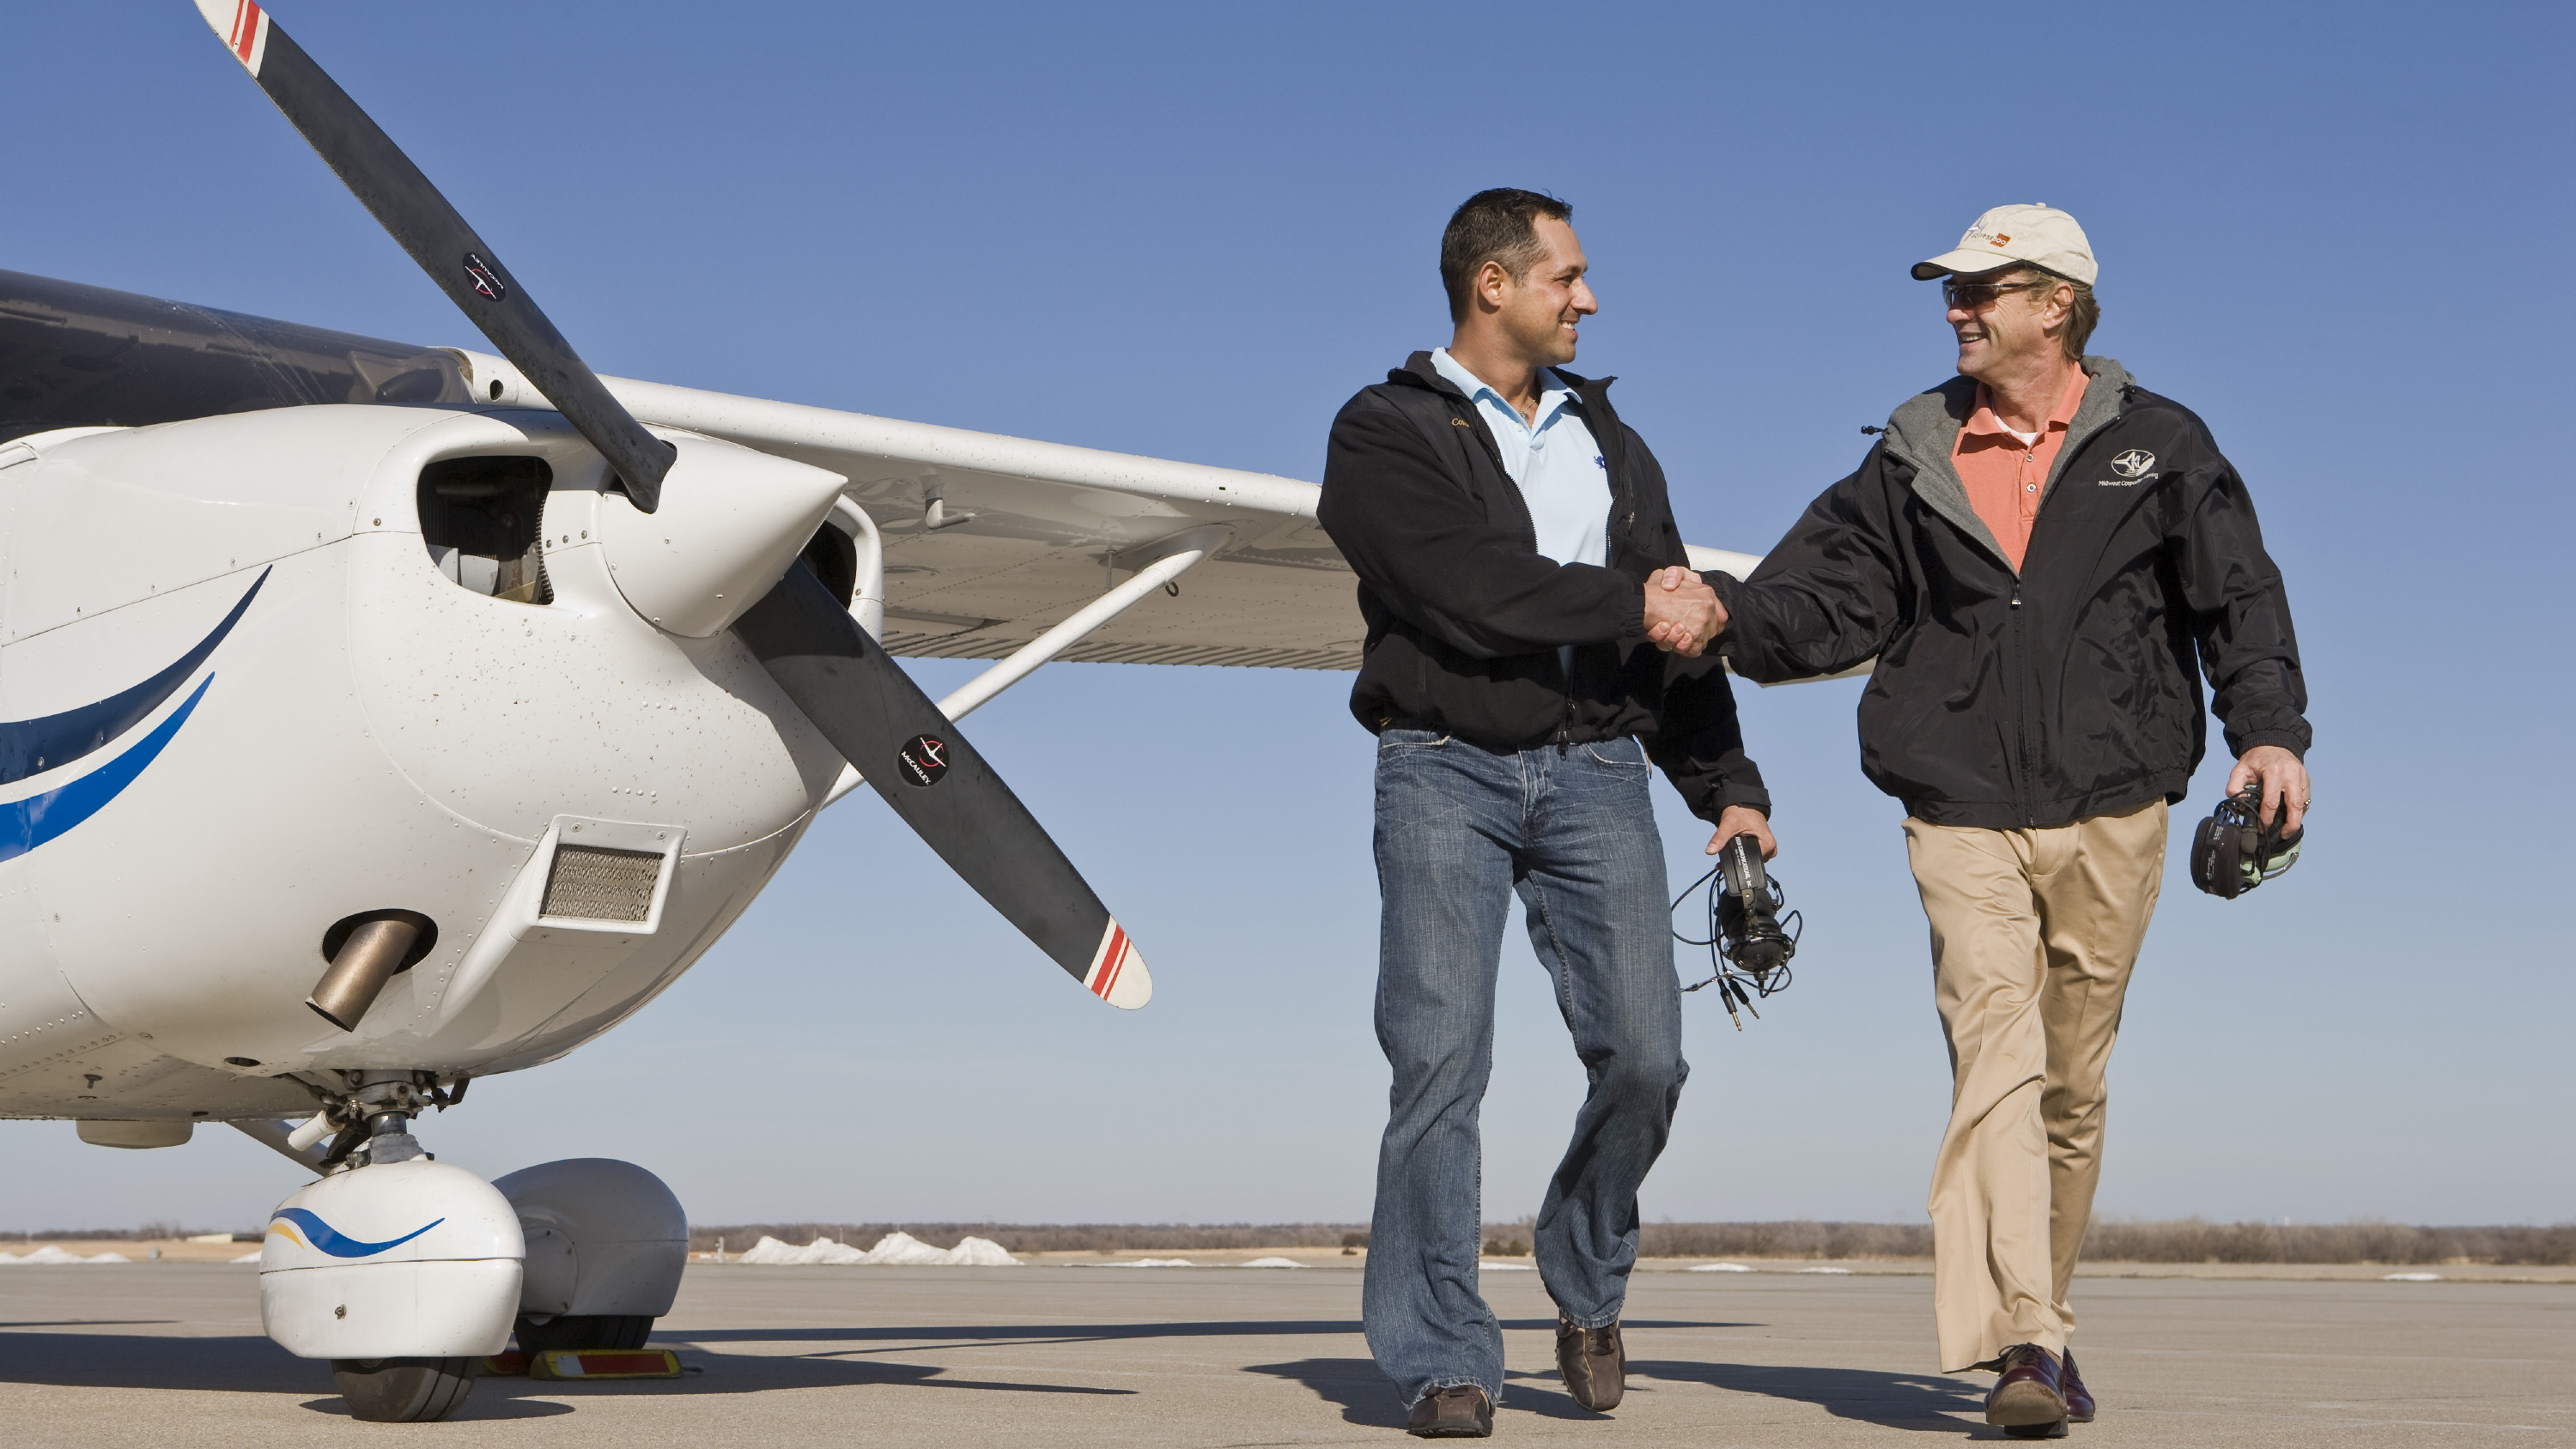 Positive relationships between a CFI and student can add value both on and off the ramp. Photo by Mike Fizer.